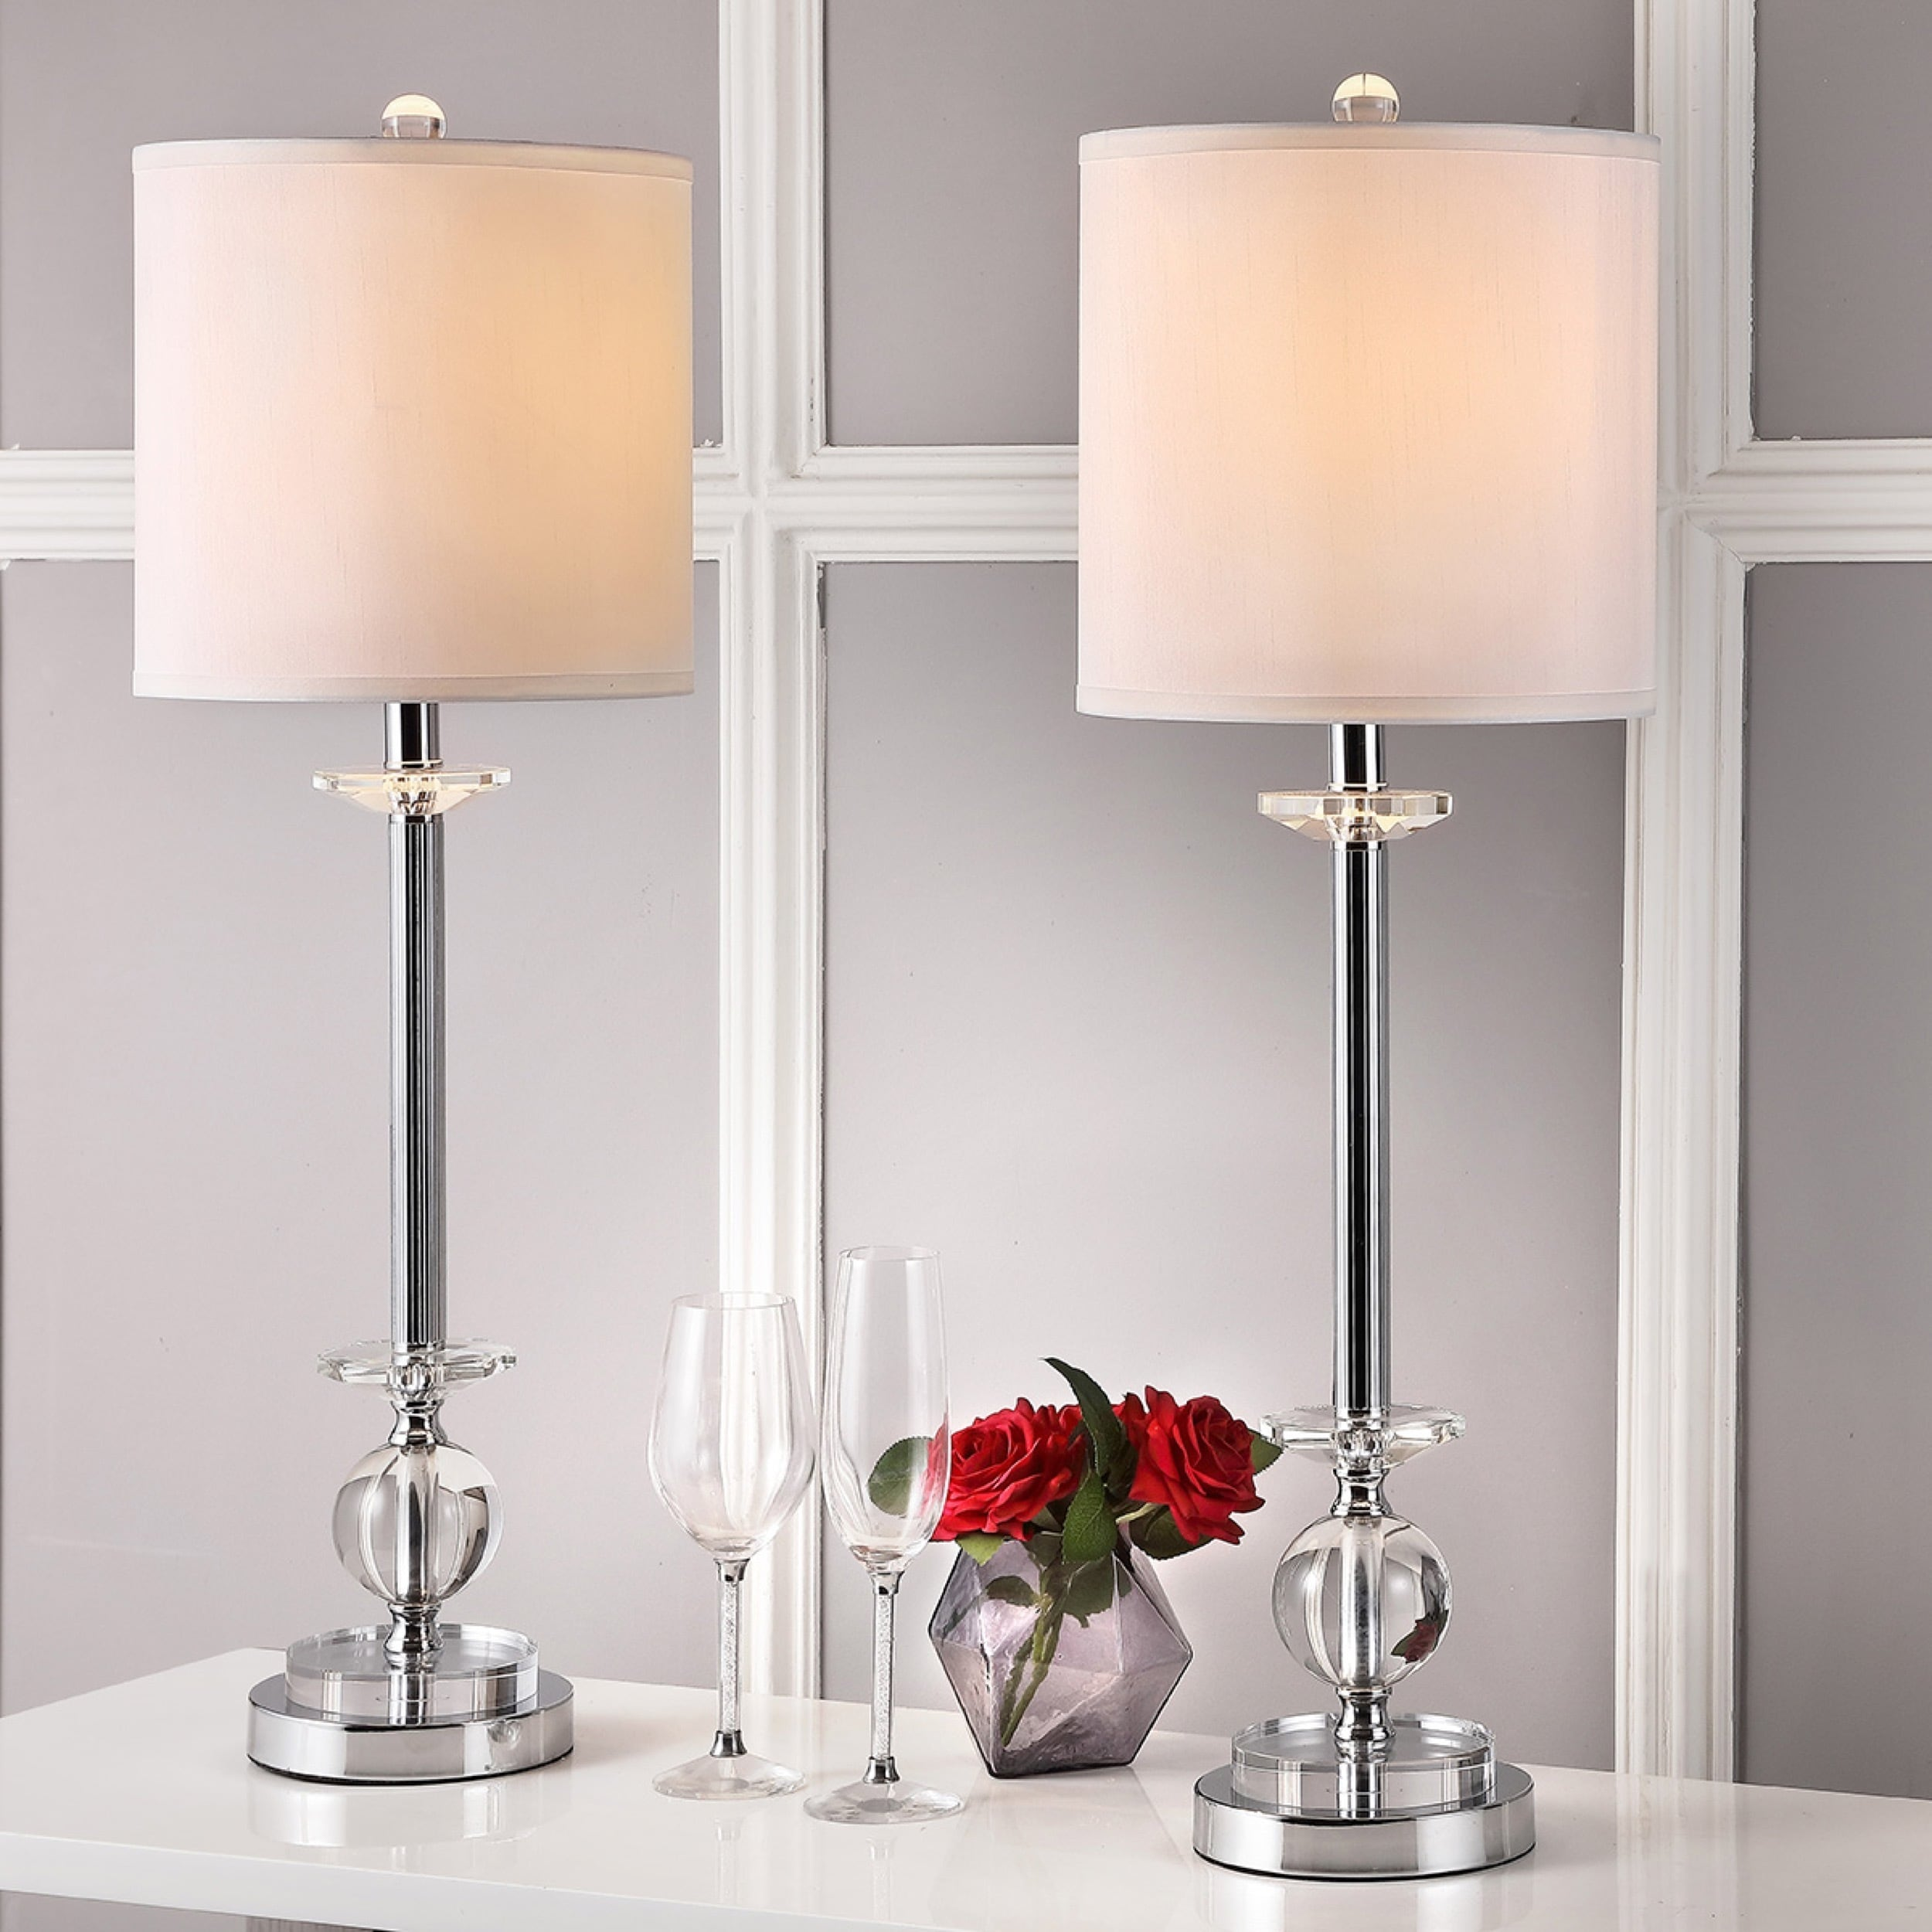 design black furniture candlestick new cool in lamp lamps popular contemporary and ideas modern home